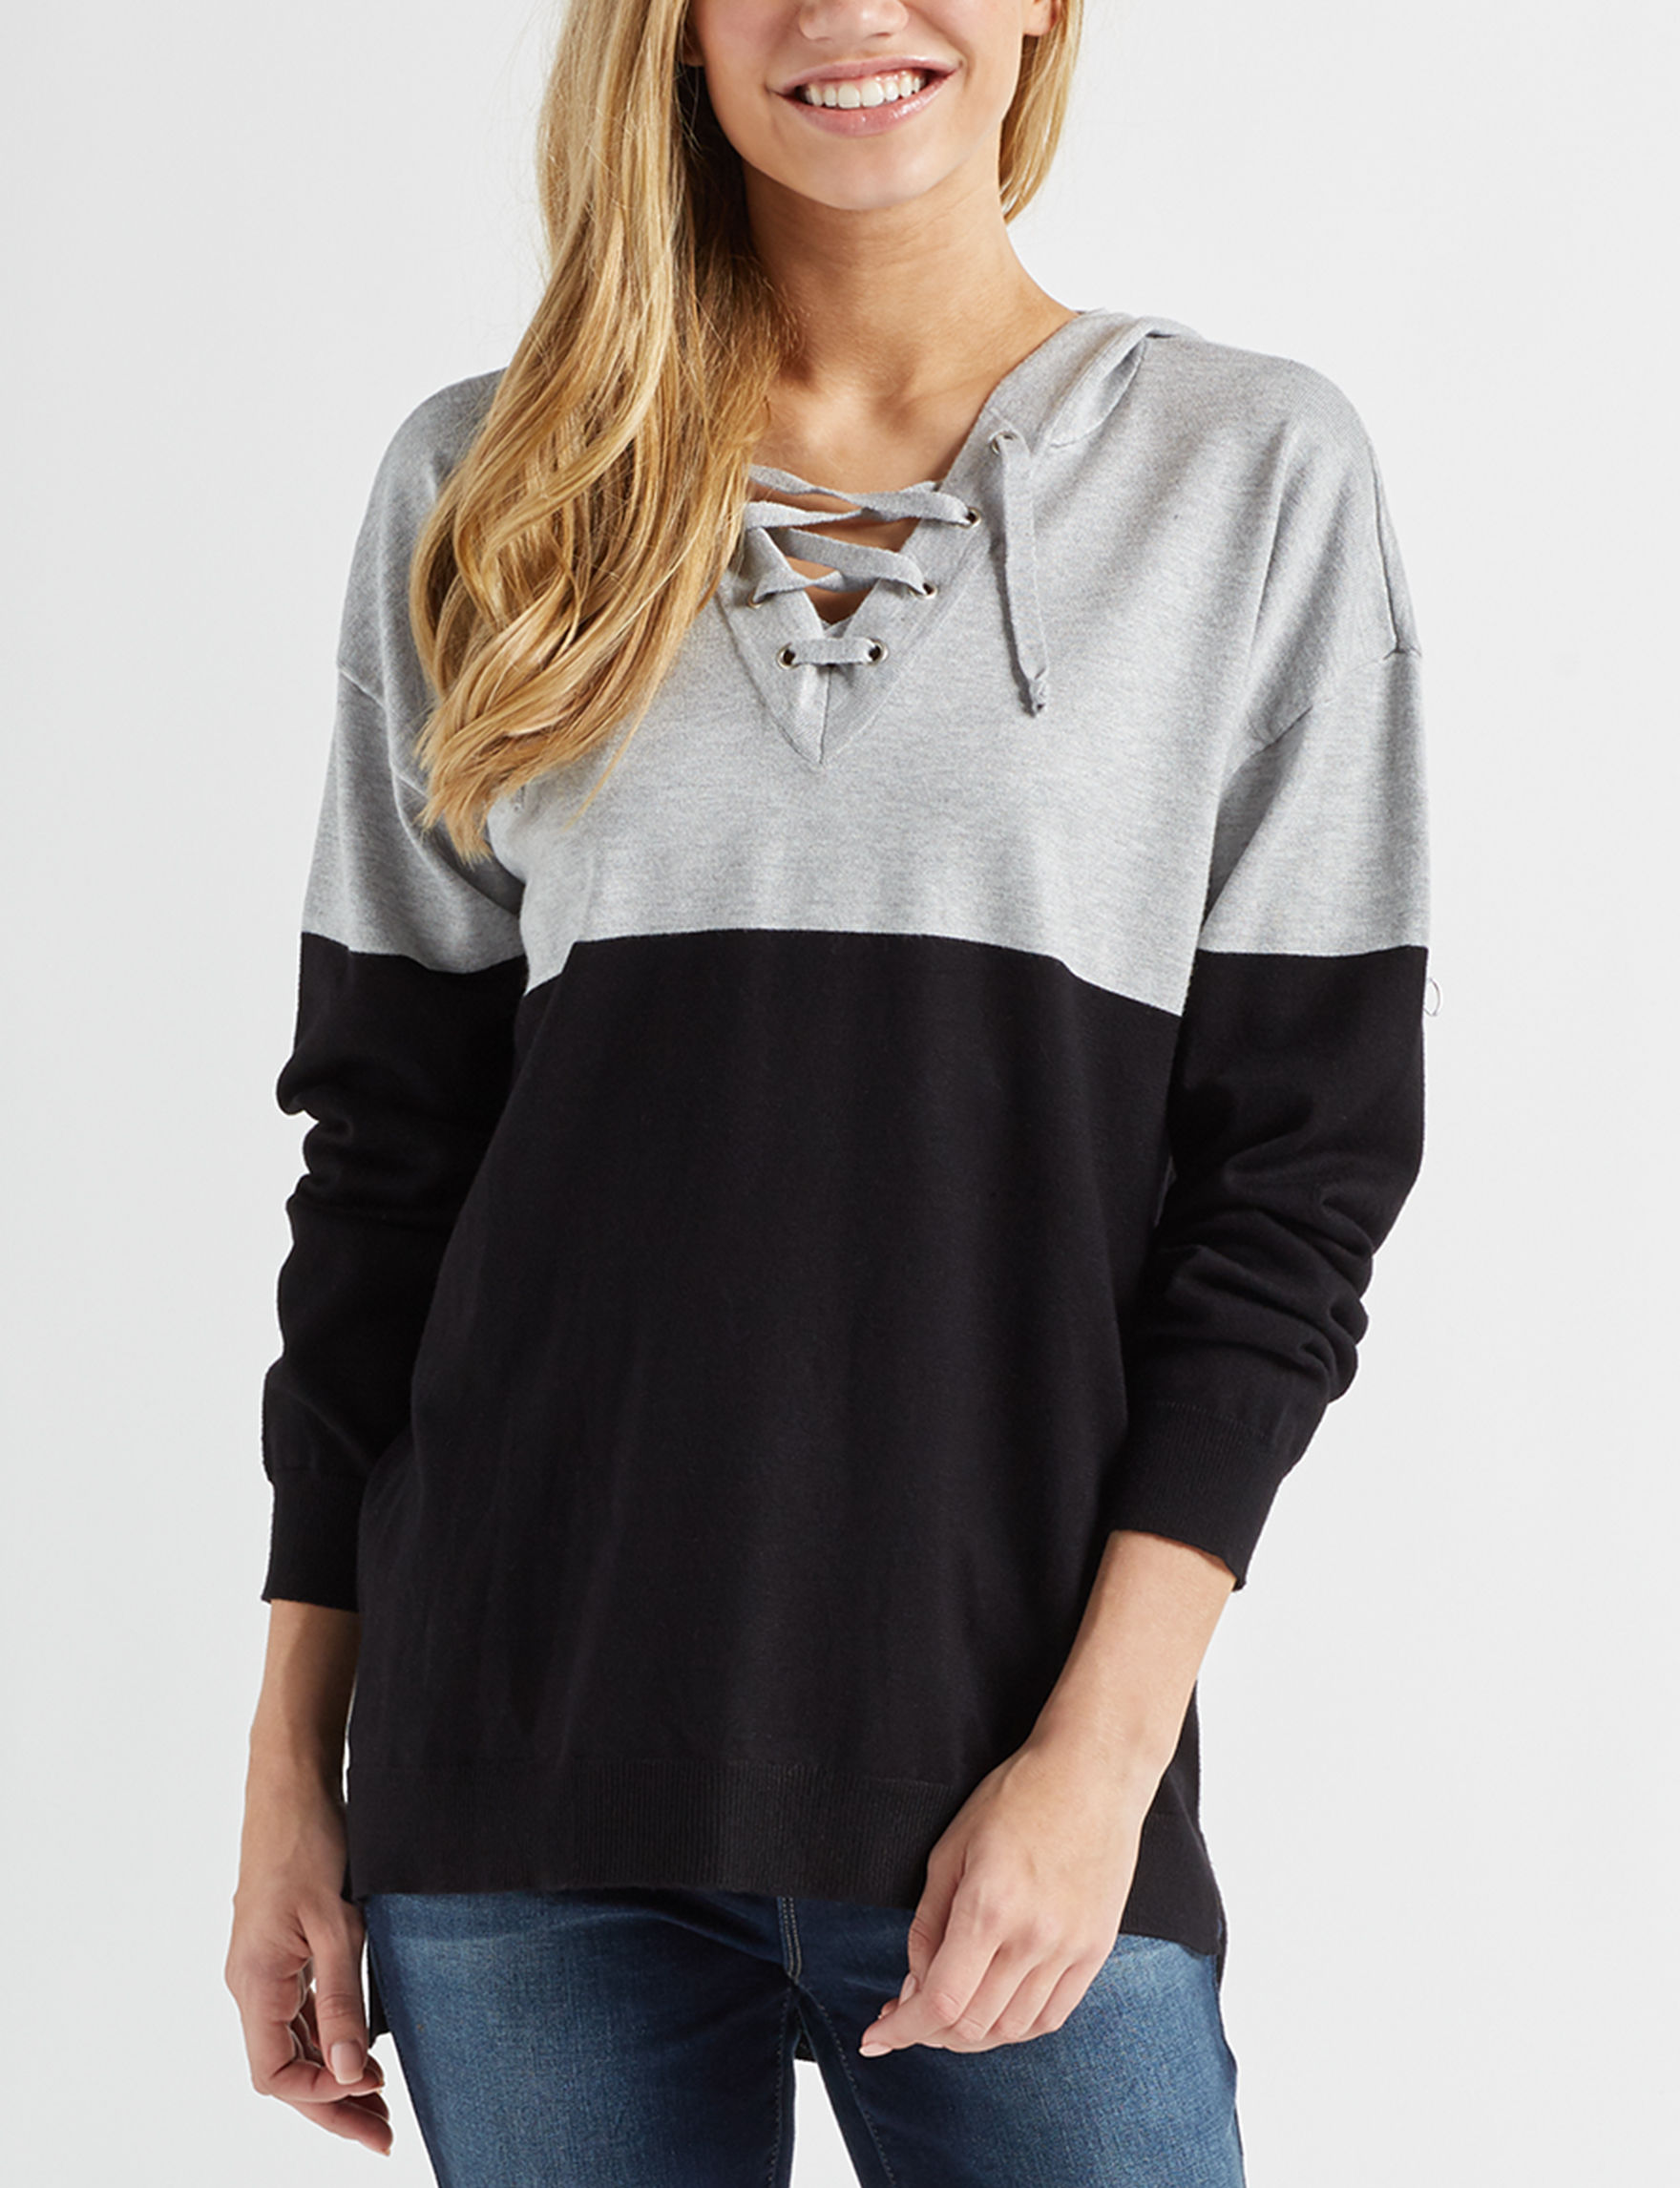 It's Our Time Black / Grey Pull-overs